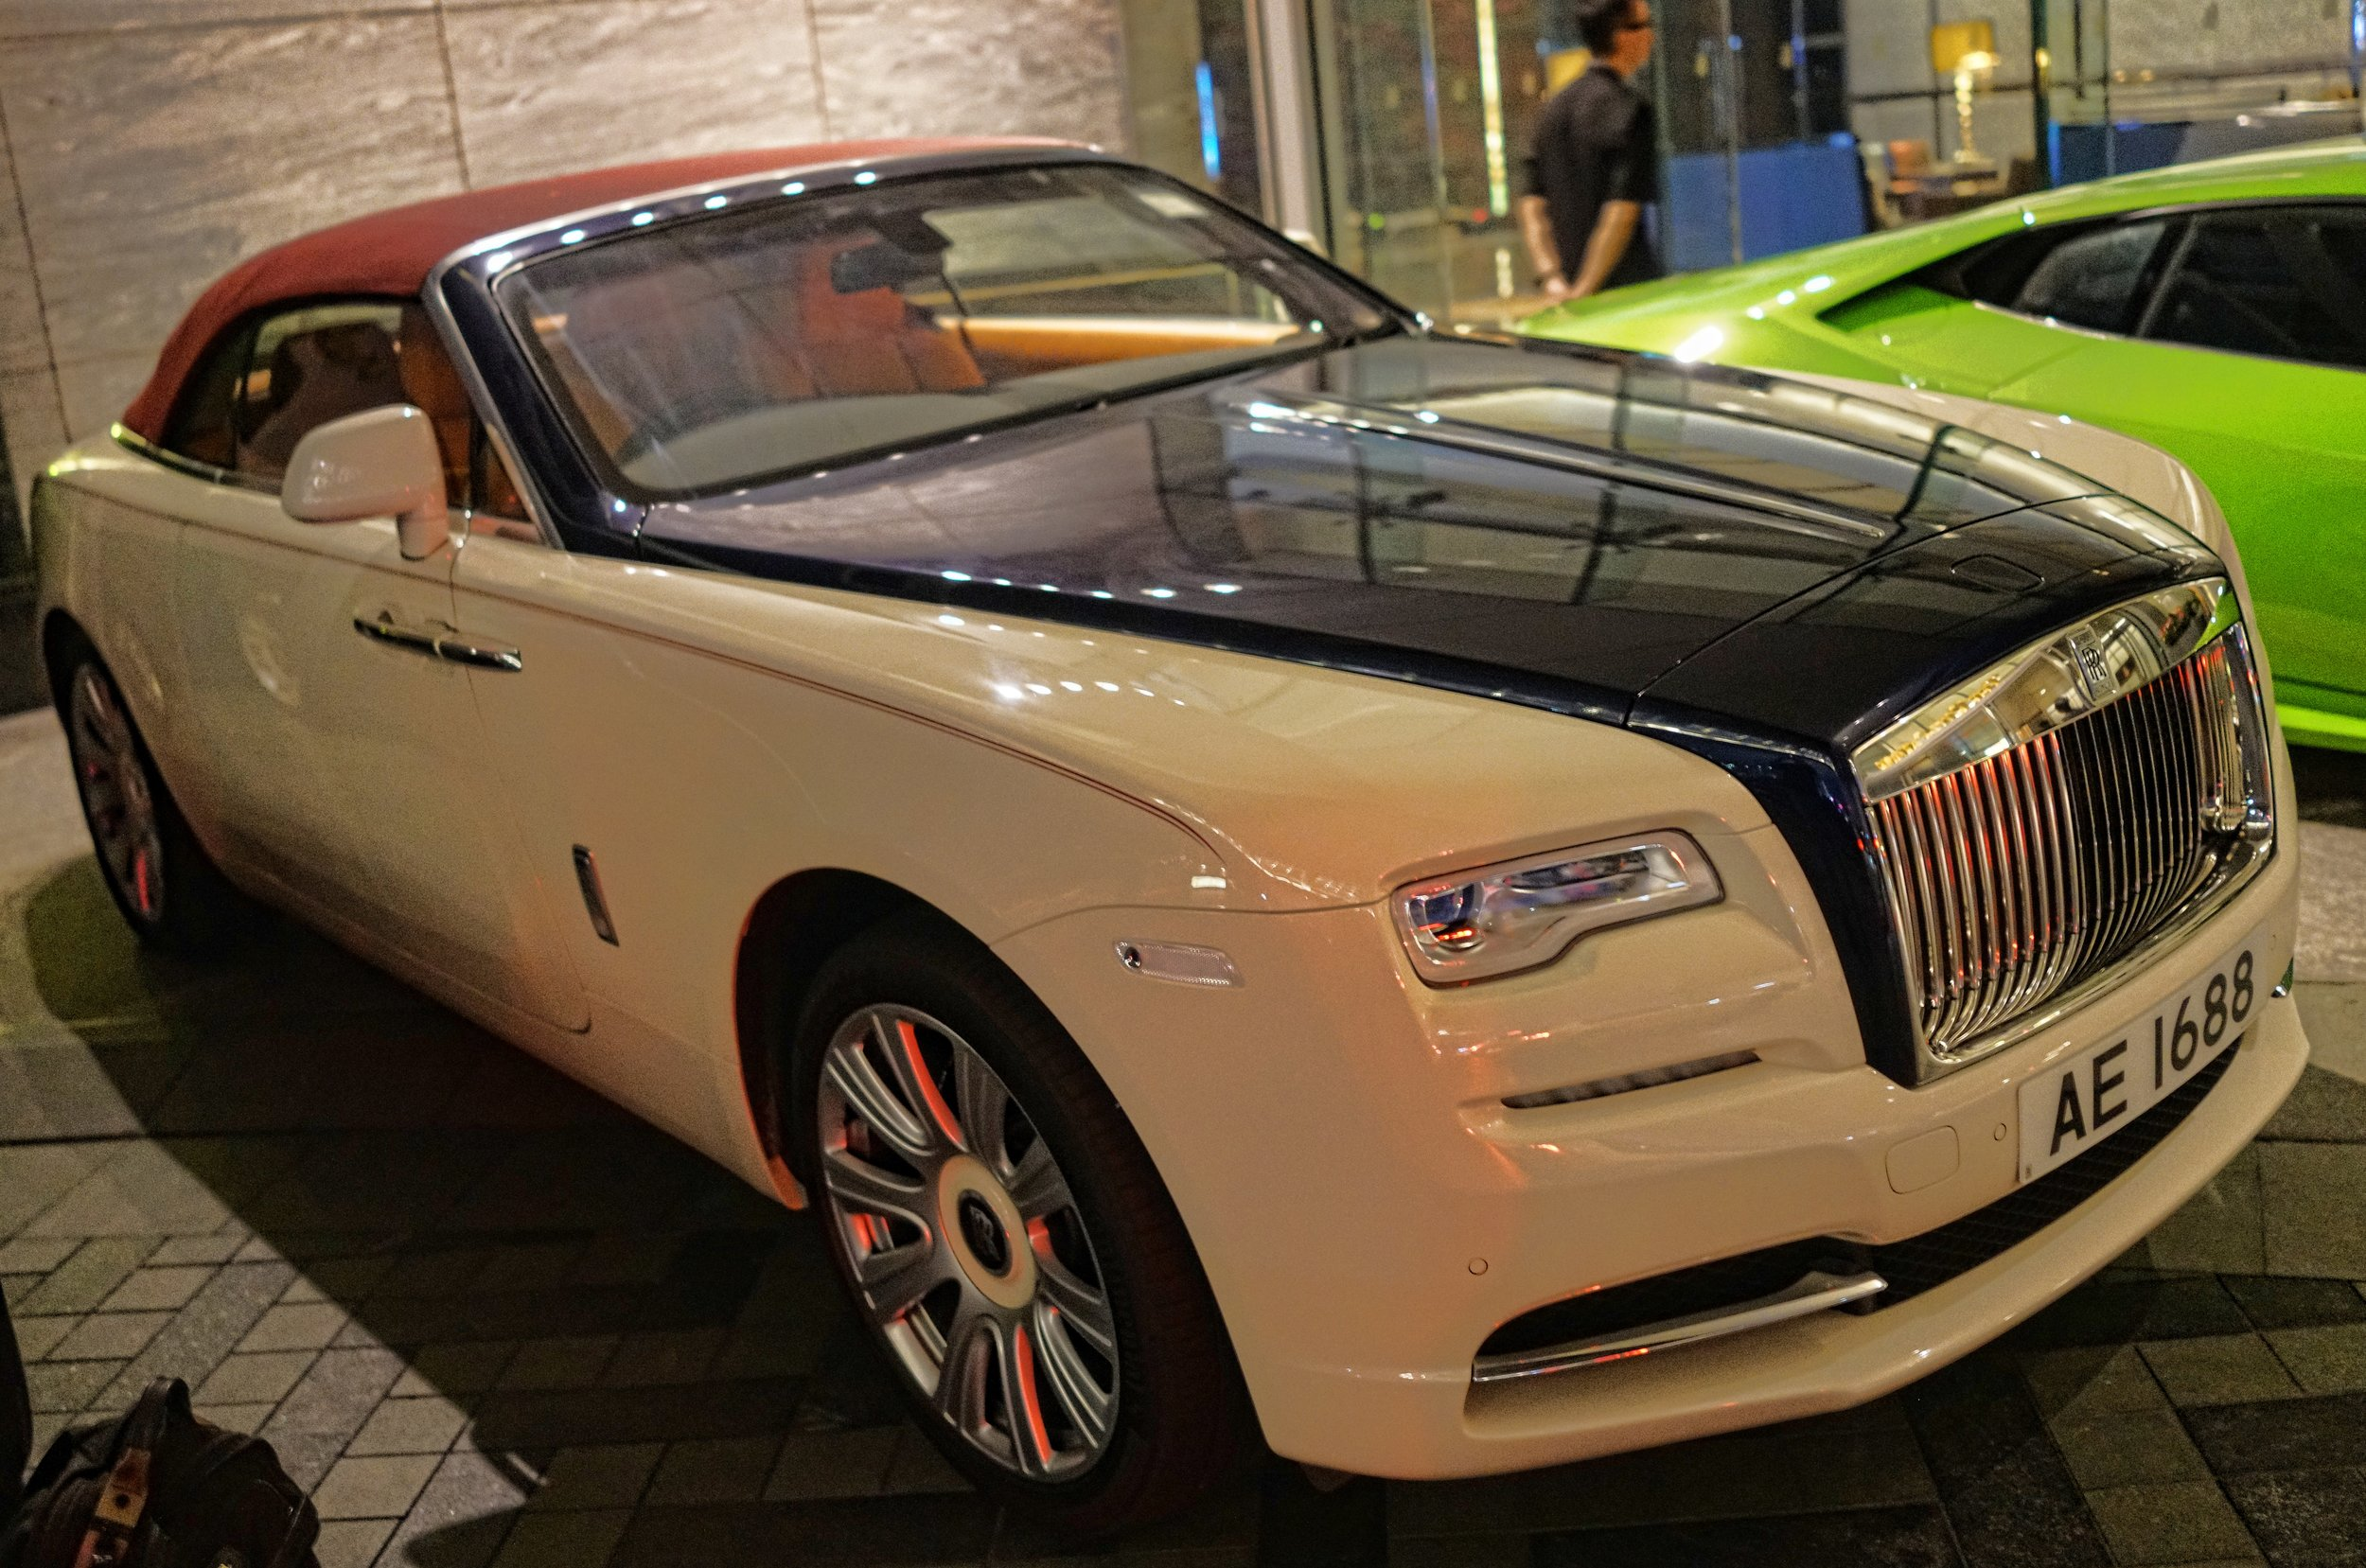 Oh Lordy, the new Rolls Royce Dawn and what a simply stunning car, love the number plate as well, it is a very lucky number is 1688... I like visiting the Ritz Carlton Hotel.. always lots of lovely cars parked there and the view from the lobby on the 103rd floor is stunning.